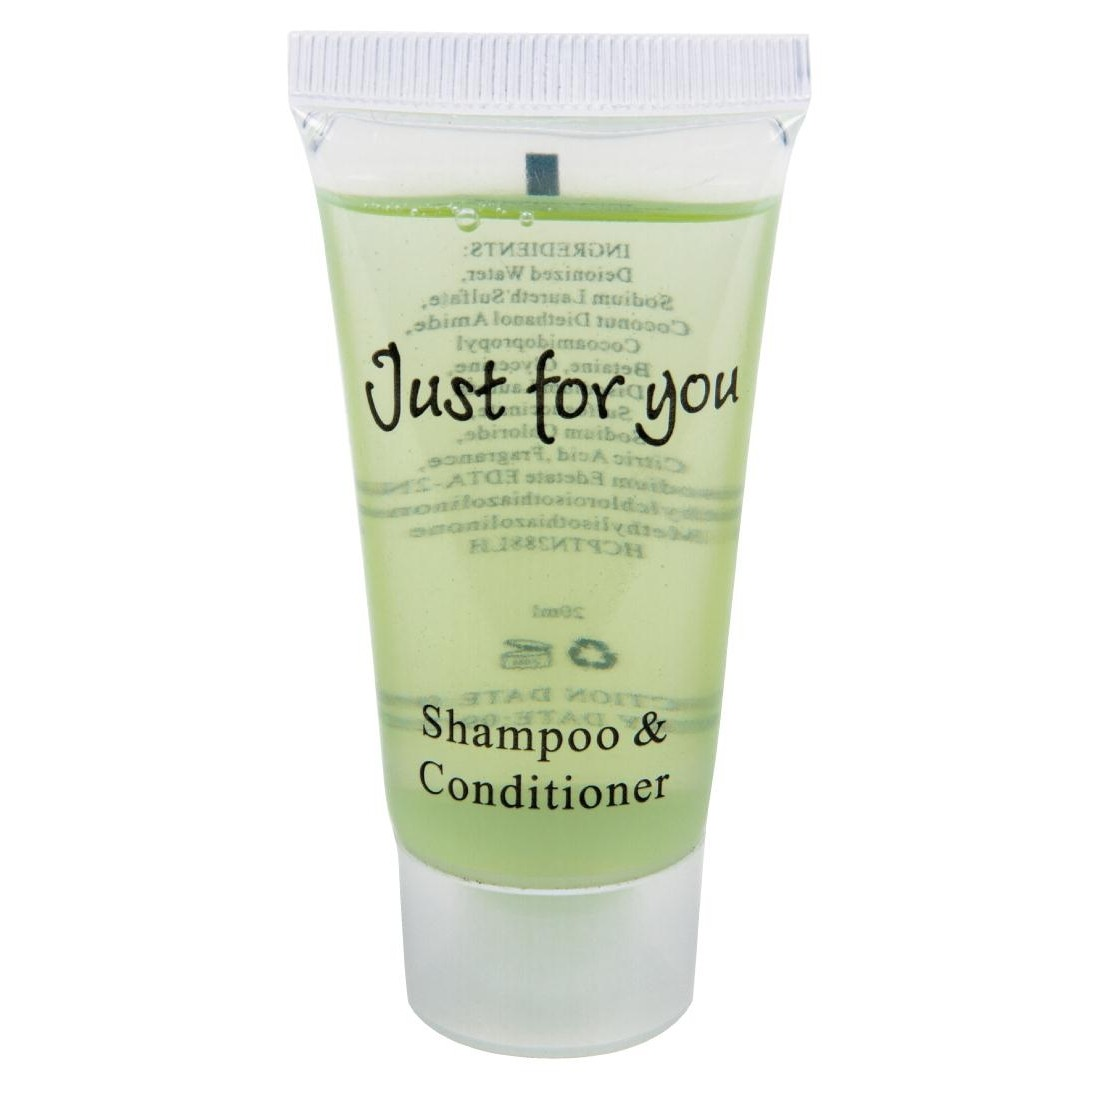 Just for You Shampoo and Conditioner 20ml